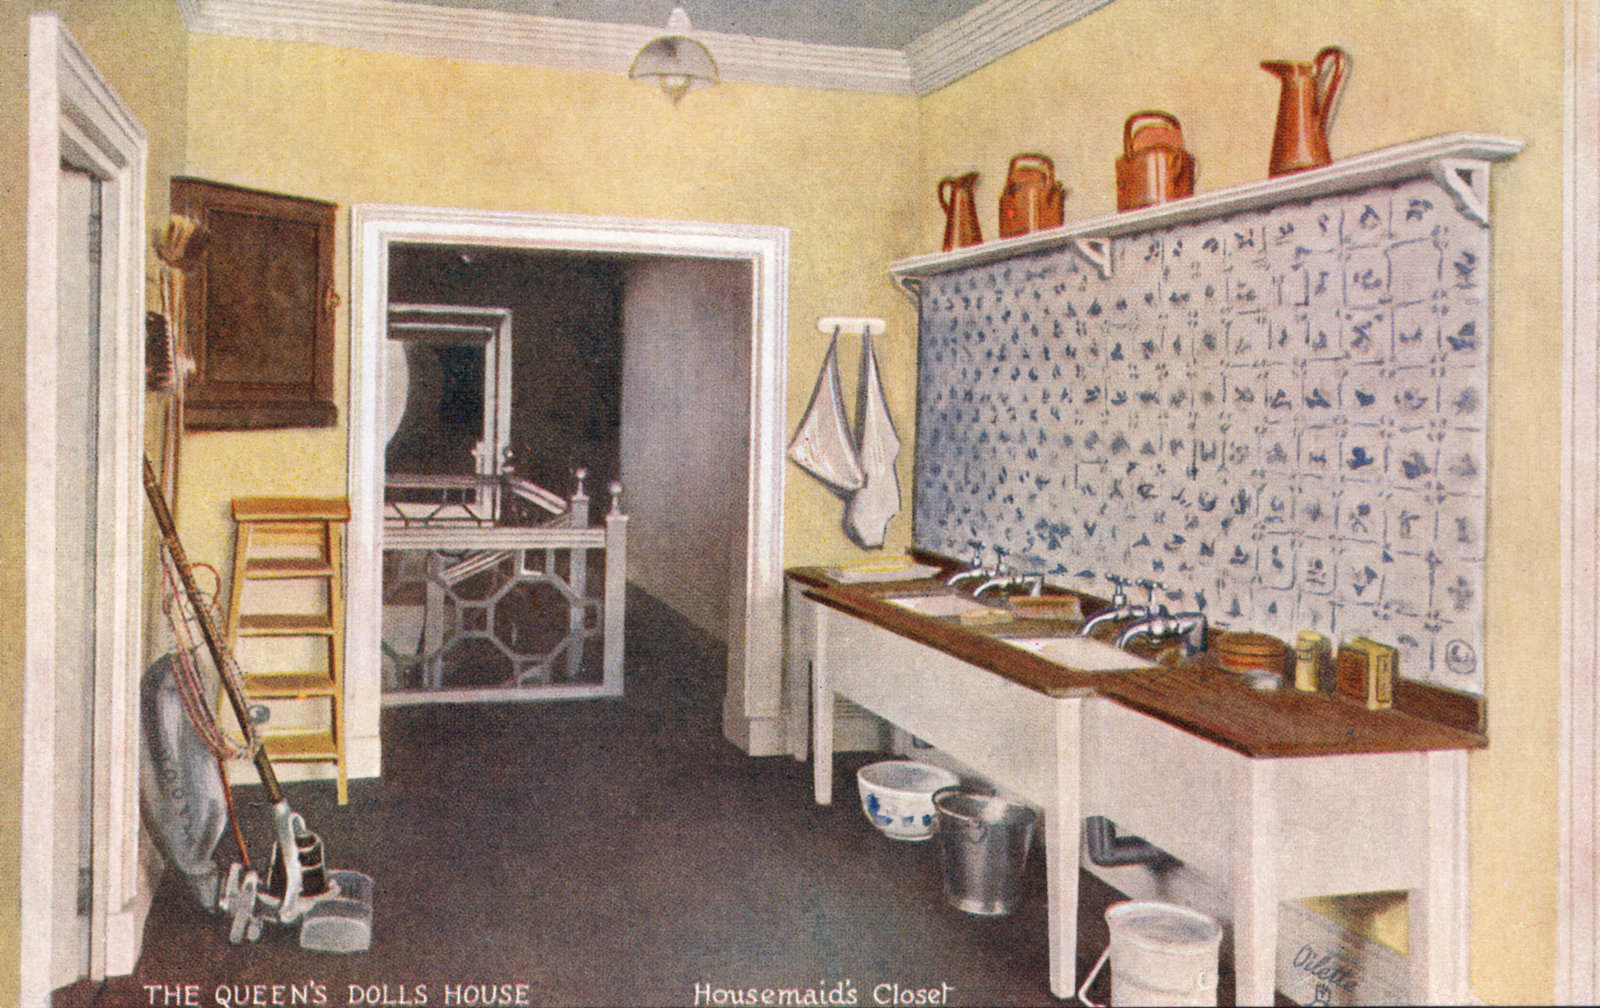 Housemaids Closet The Queens Dolls House Postcards Raphael Tuck